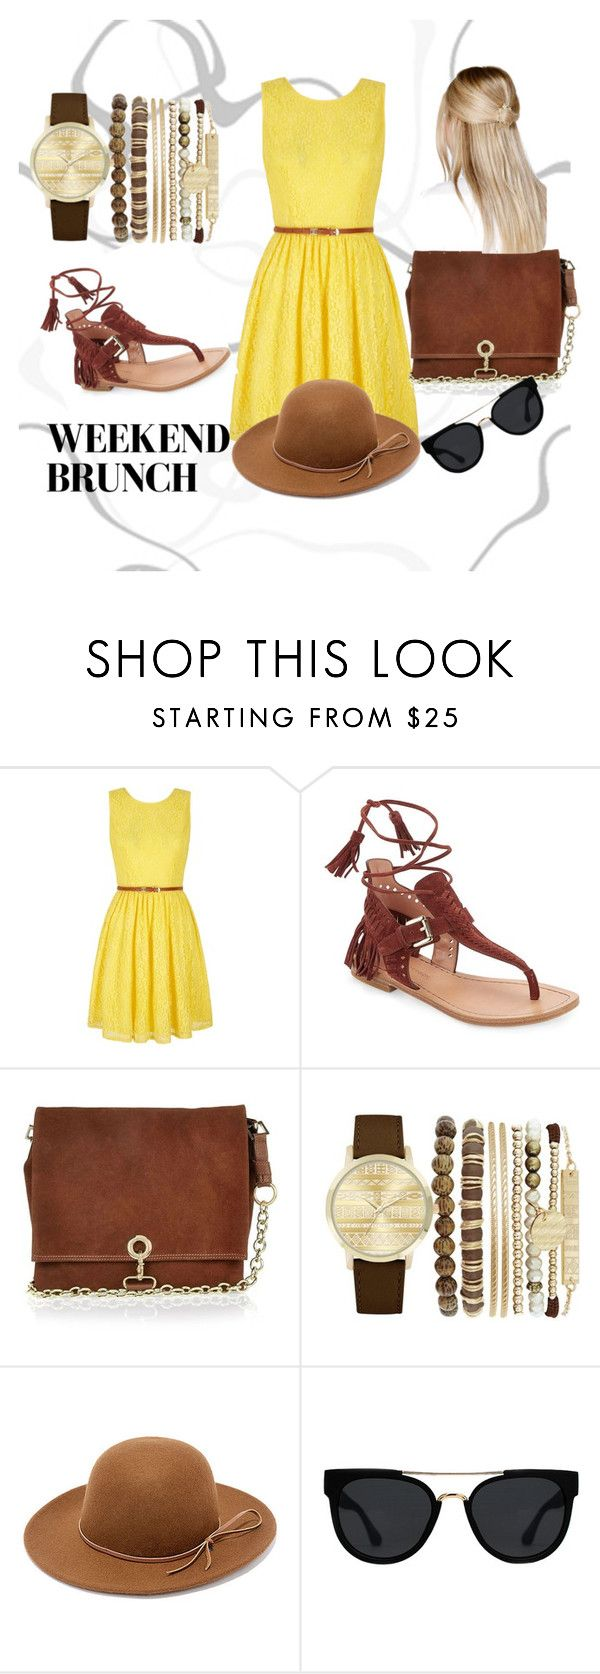 """""""Summery weekend brunch"""" by ogor2812 on Polyvore featuring Yumi, Sigerson Morrison, River Island, Jessica Carlyle, RHYTHM, Quay and Boohoo"""